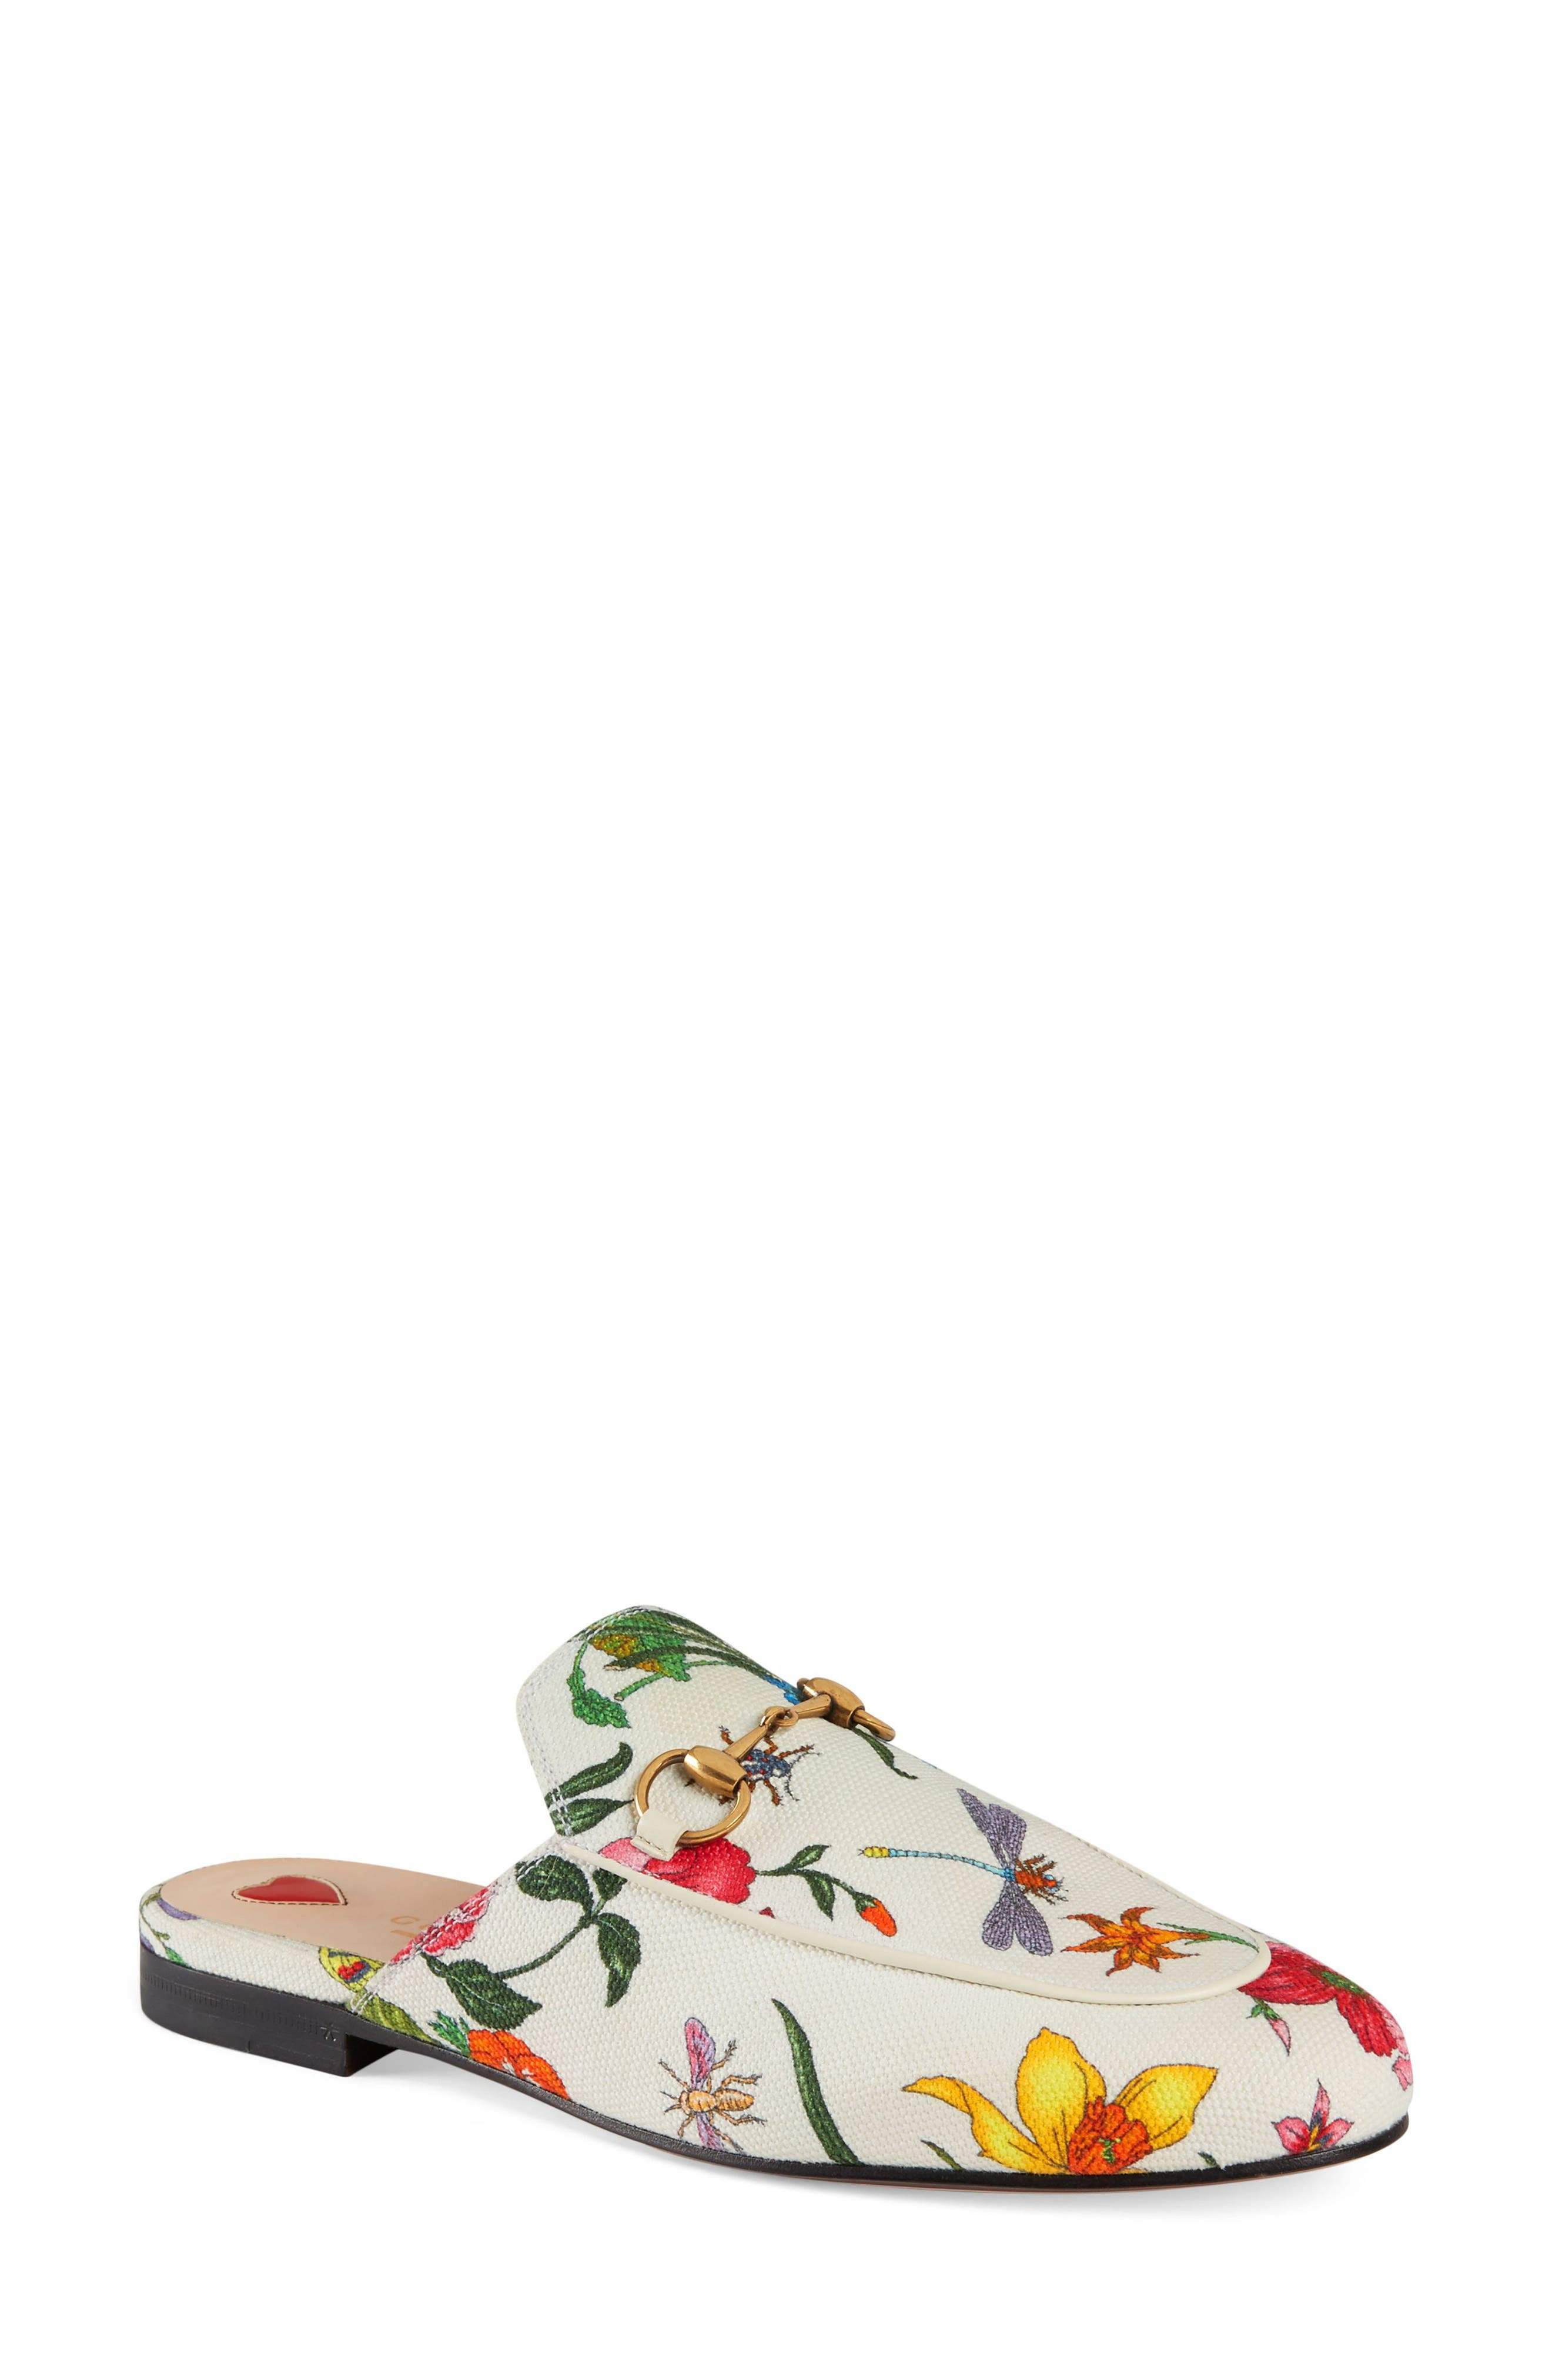 Gucci Princetown Loafer Mule - White